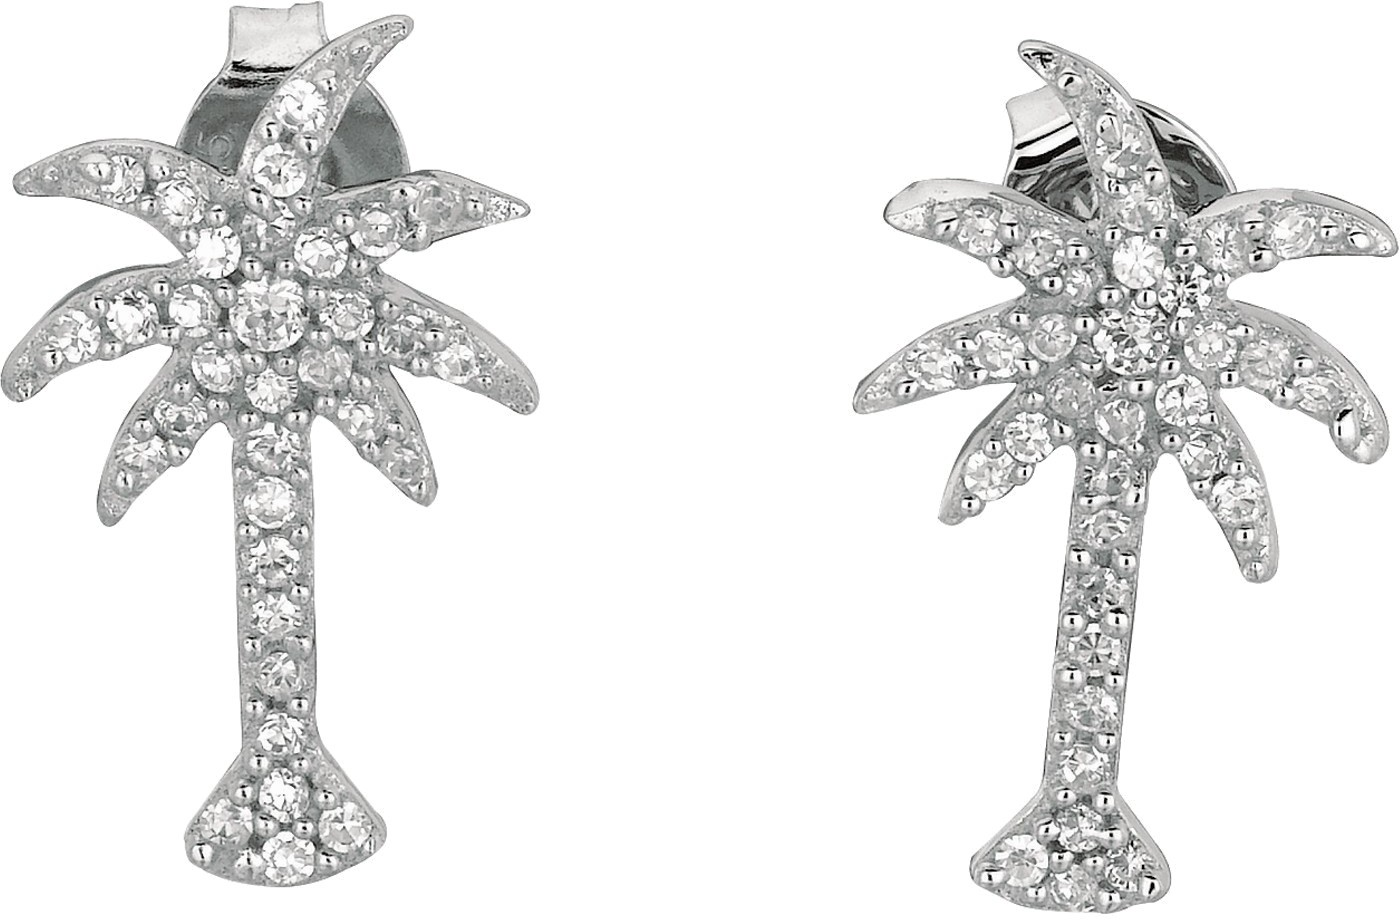 Silver Rhodium Plated Shiny Palm Tree Sea Life Post Earrings w/ White Cubic Zirconia (CZ) (BTAGER532)